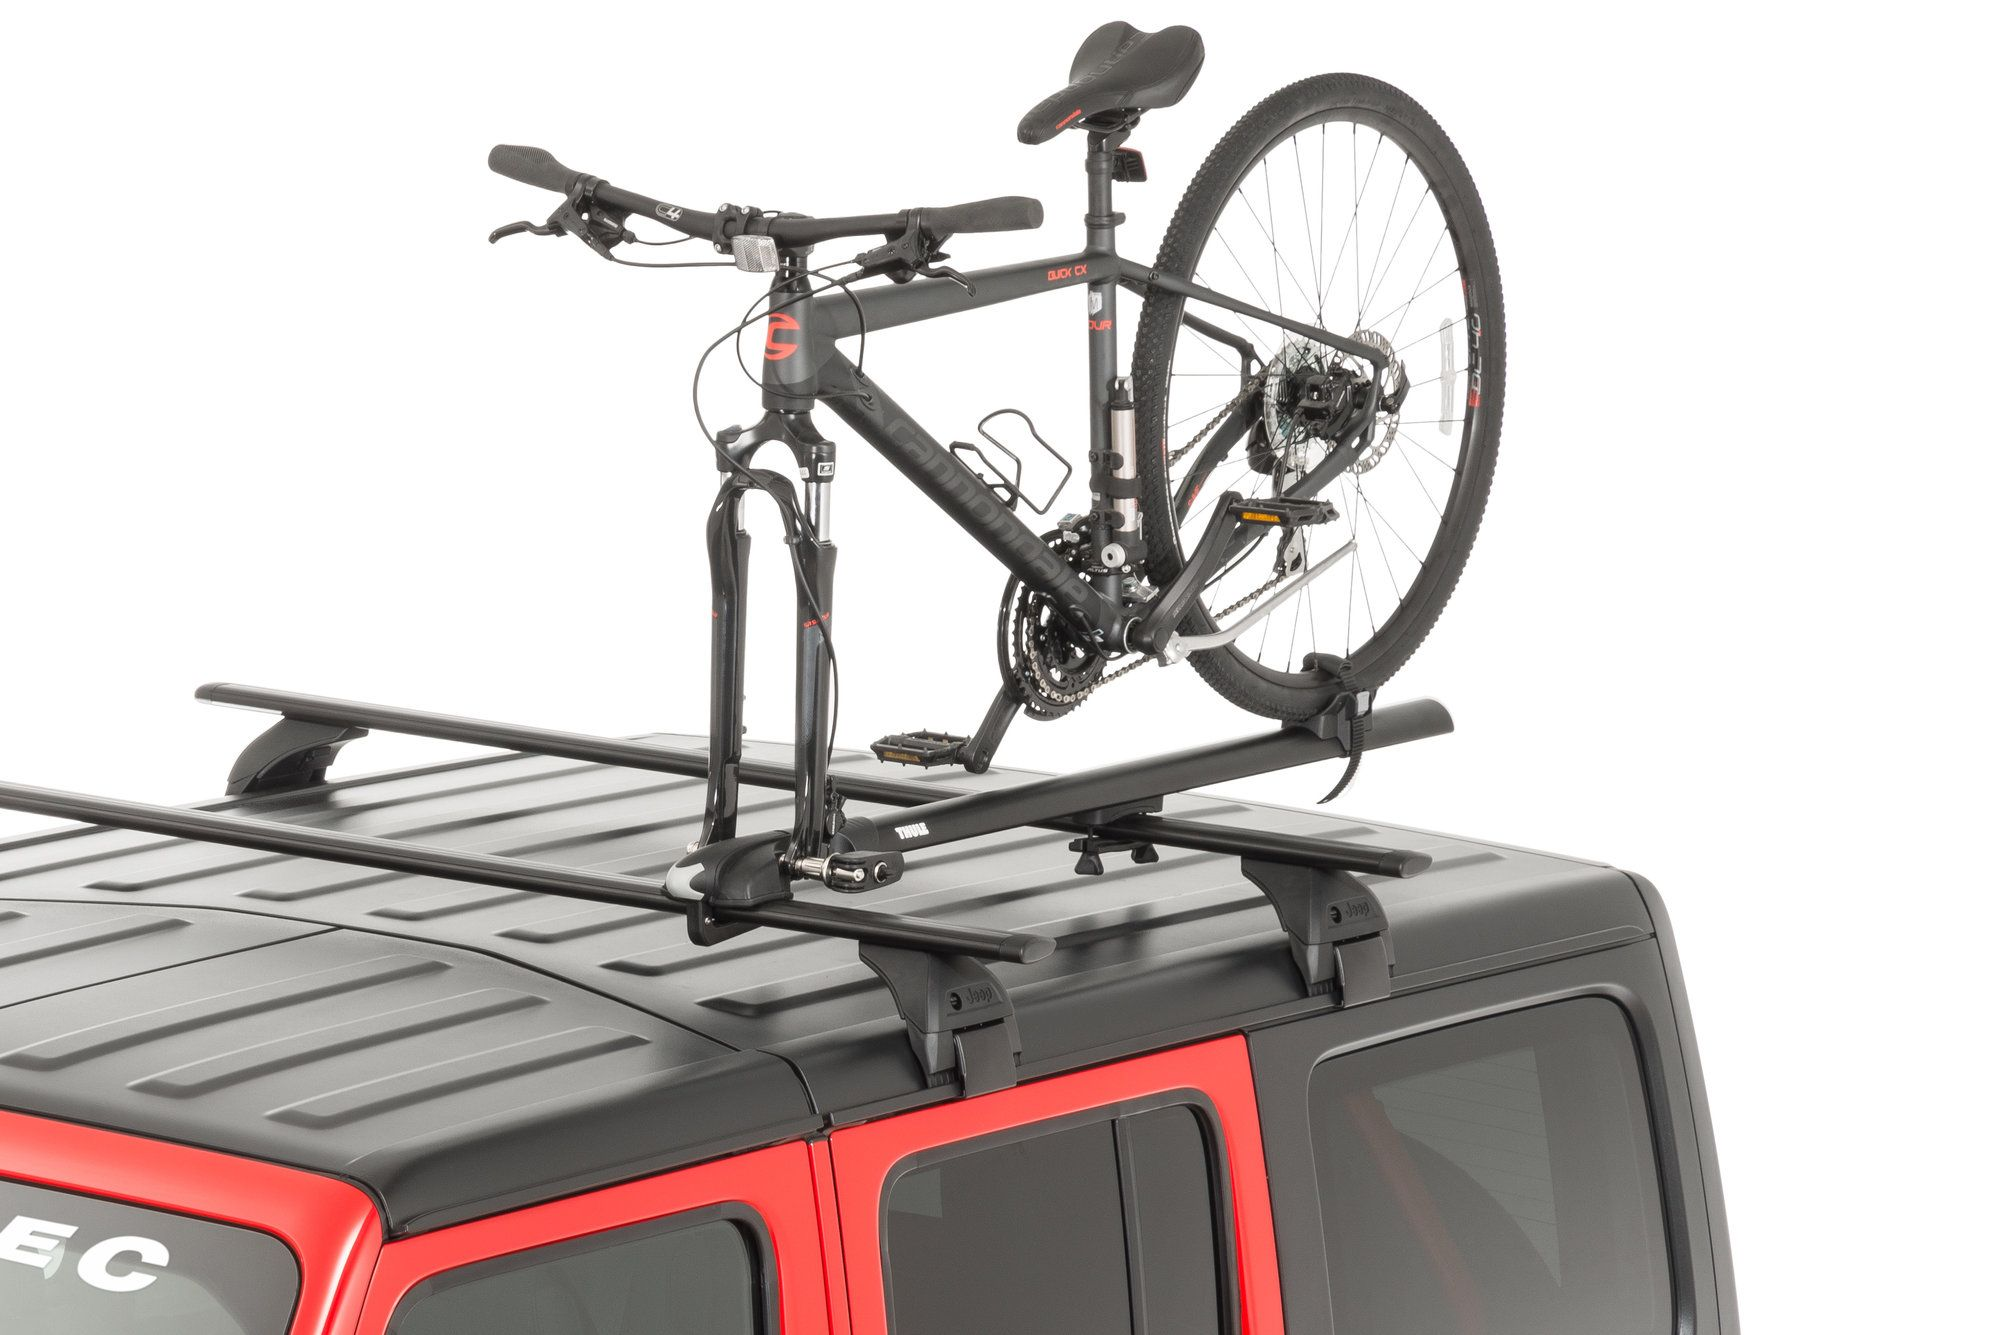 Mopar Tcfkm526 Rooftop Bike Carrier Fork Mount Style Mopar Roof